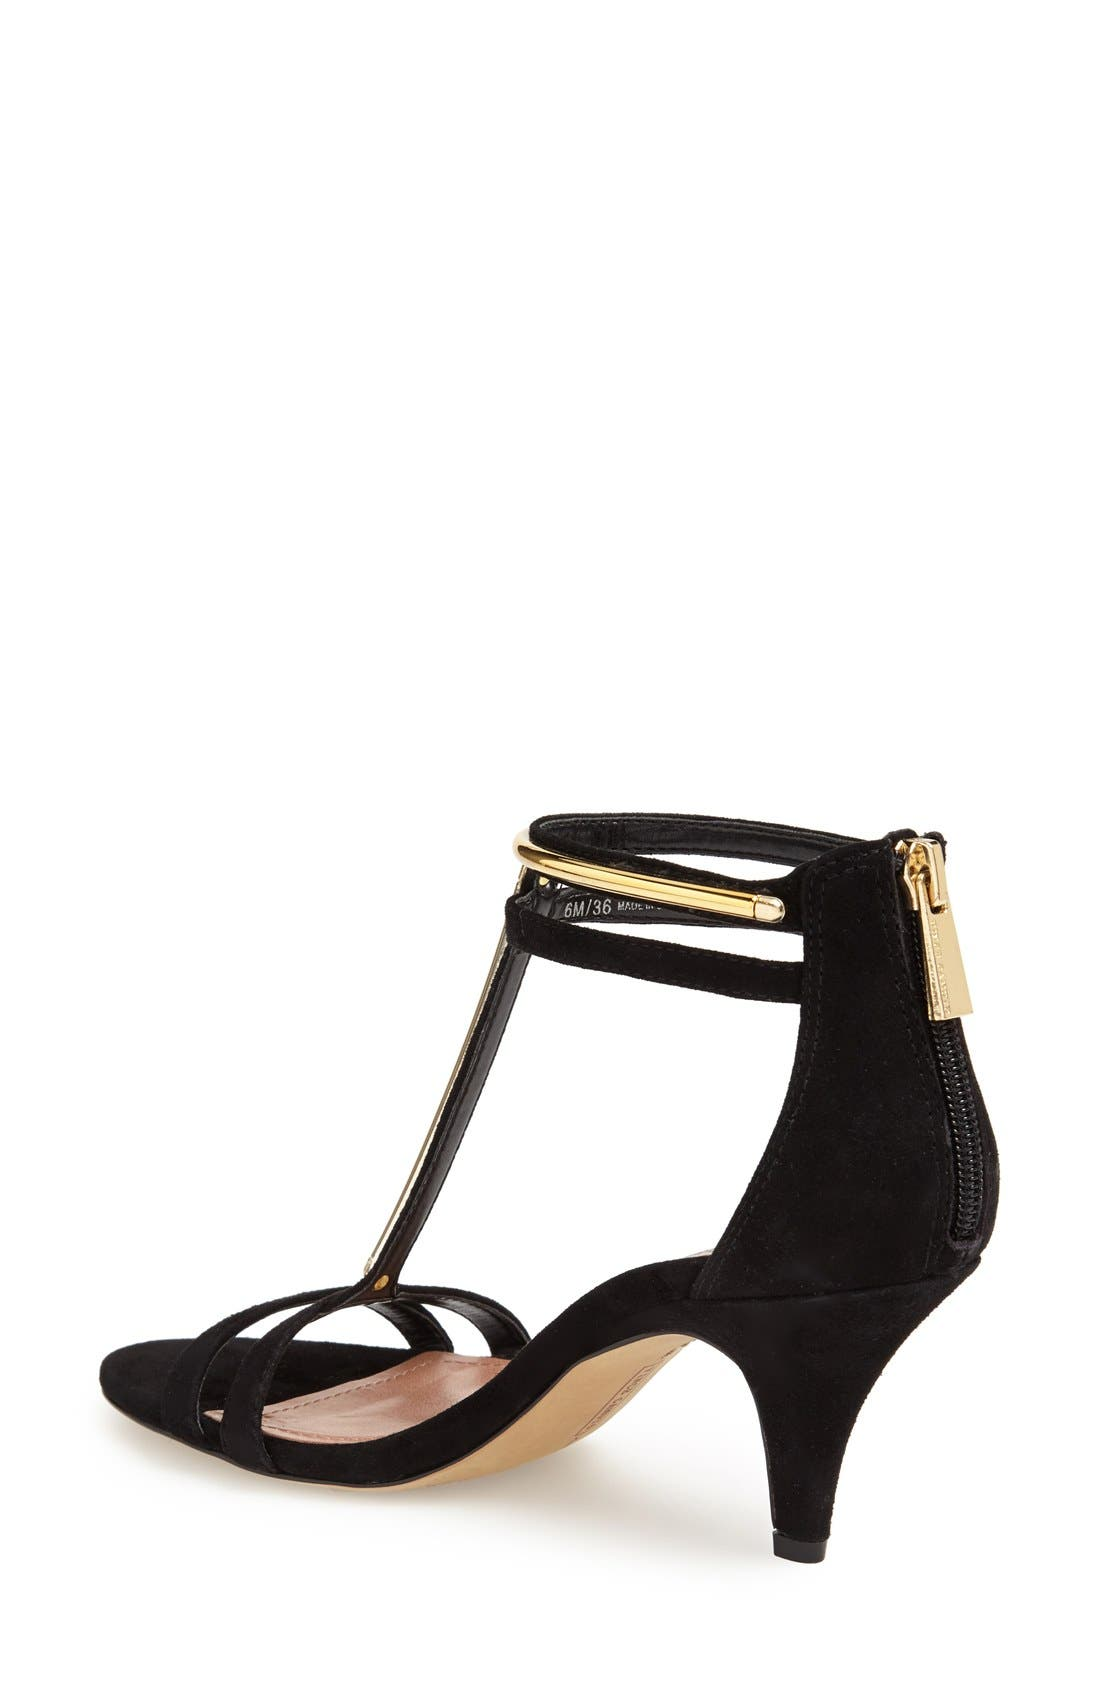 Alternate Image 2  - Vince Camuto 'Mitzy' Suede T-Strap Sandal (Women)